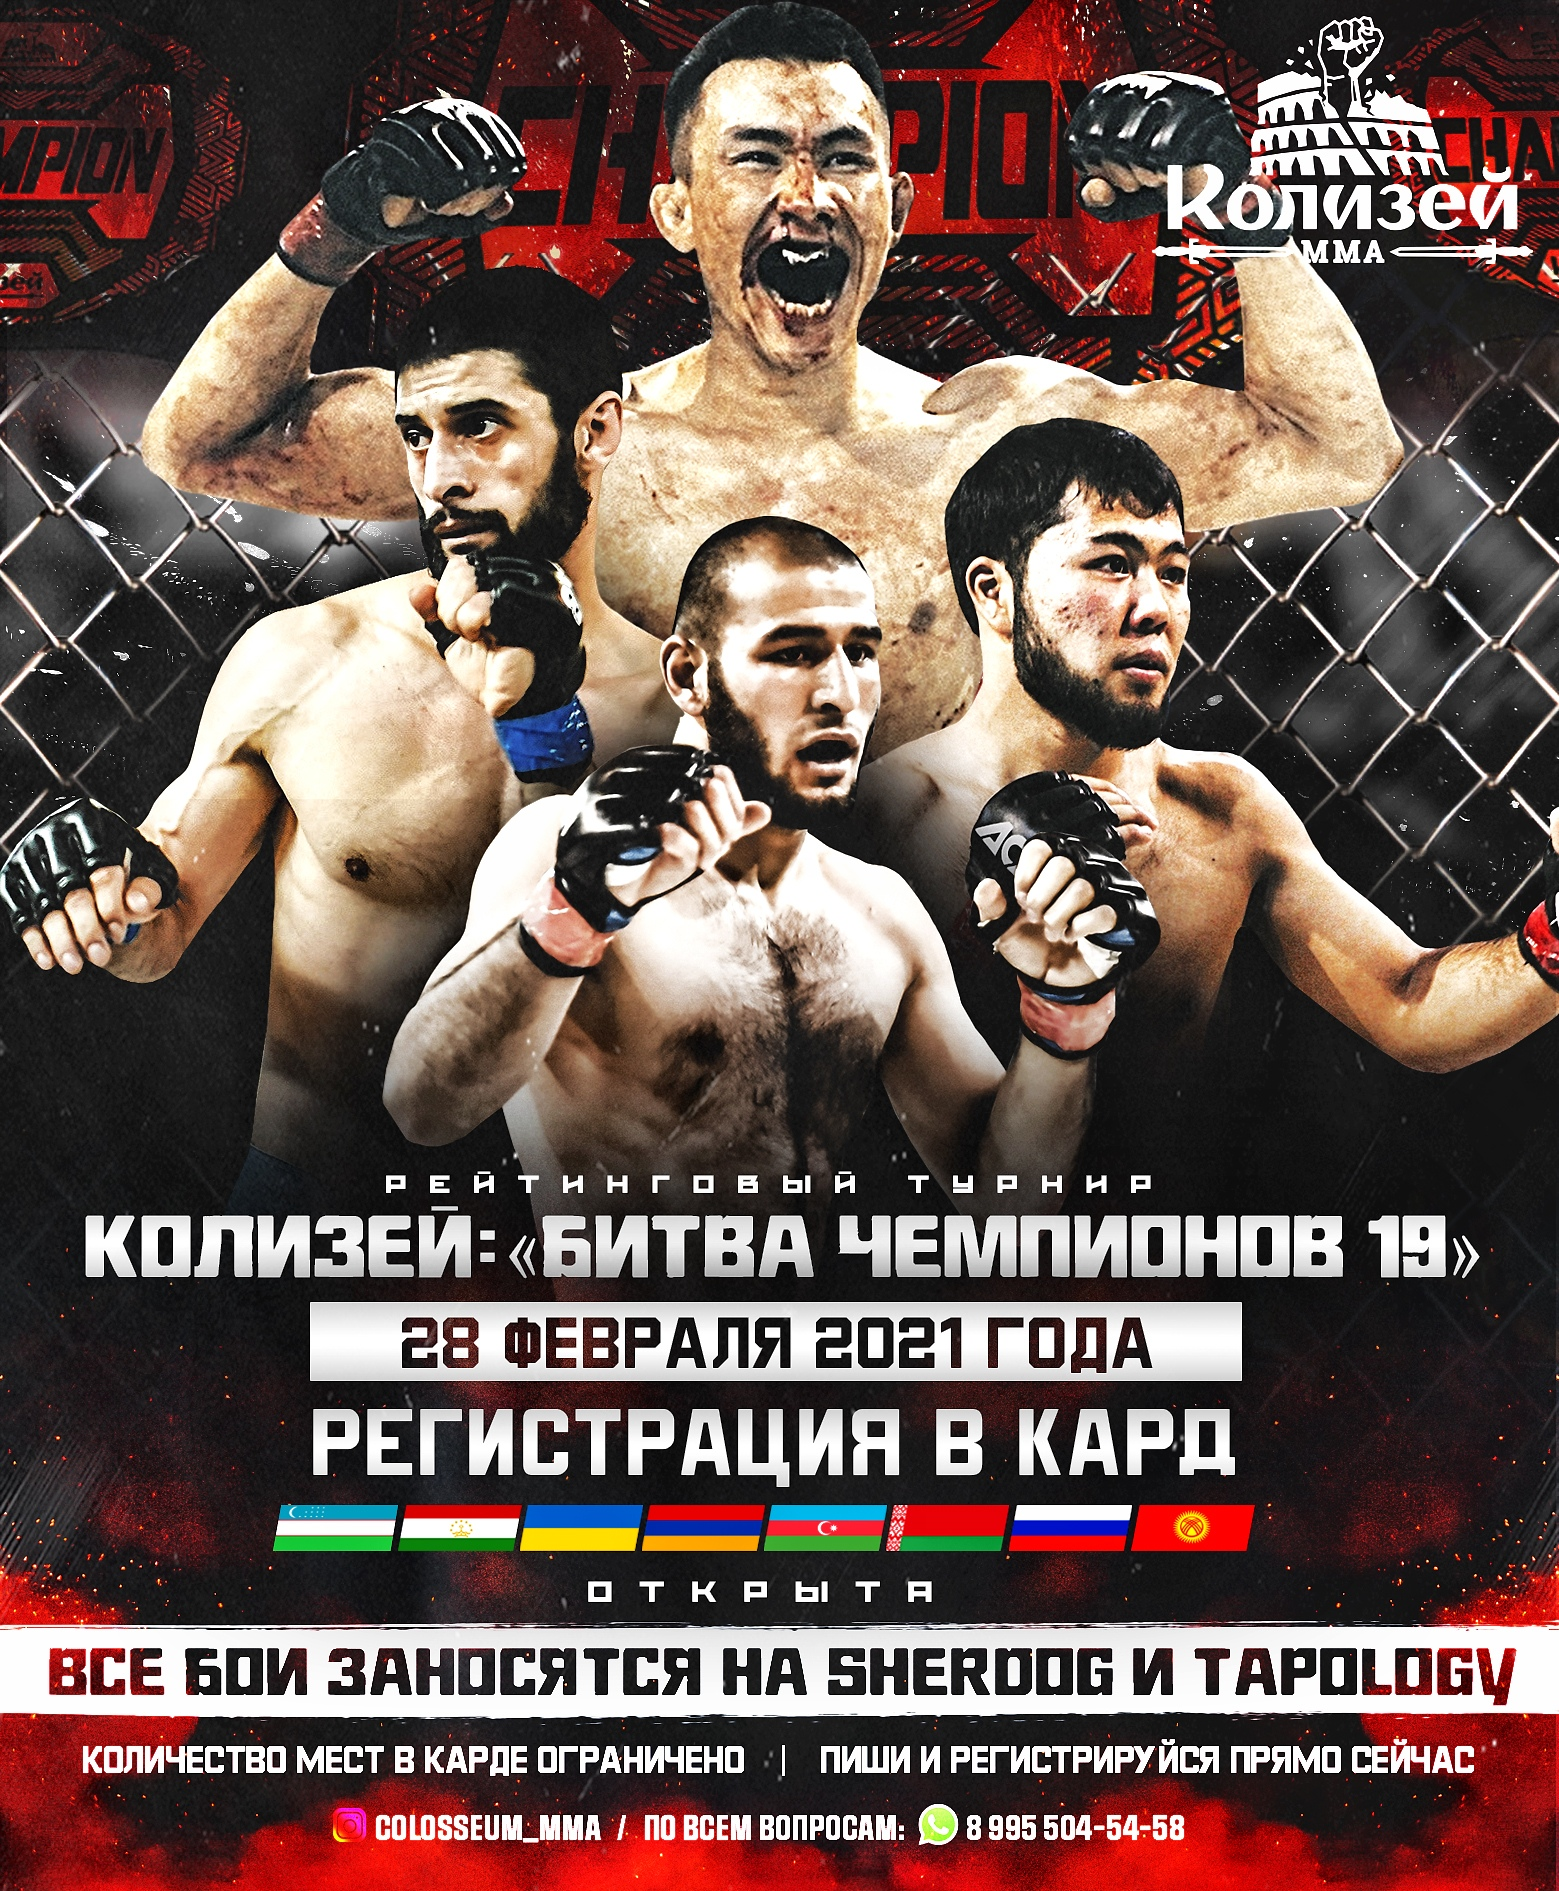 Colosseum MMA: Battle of the Champions 19